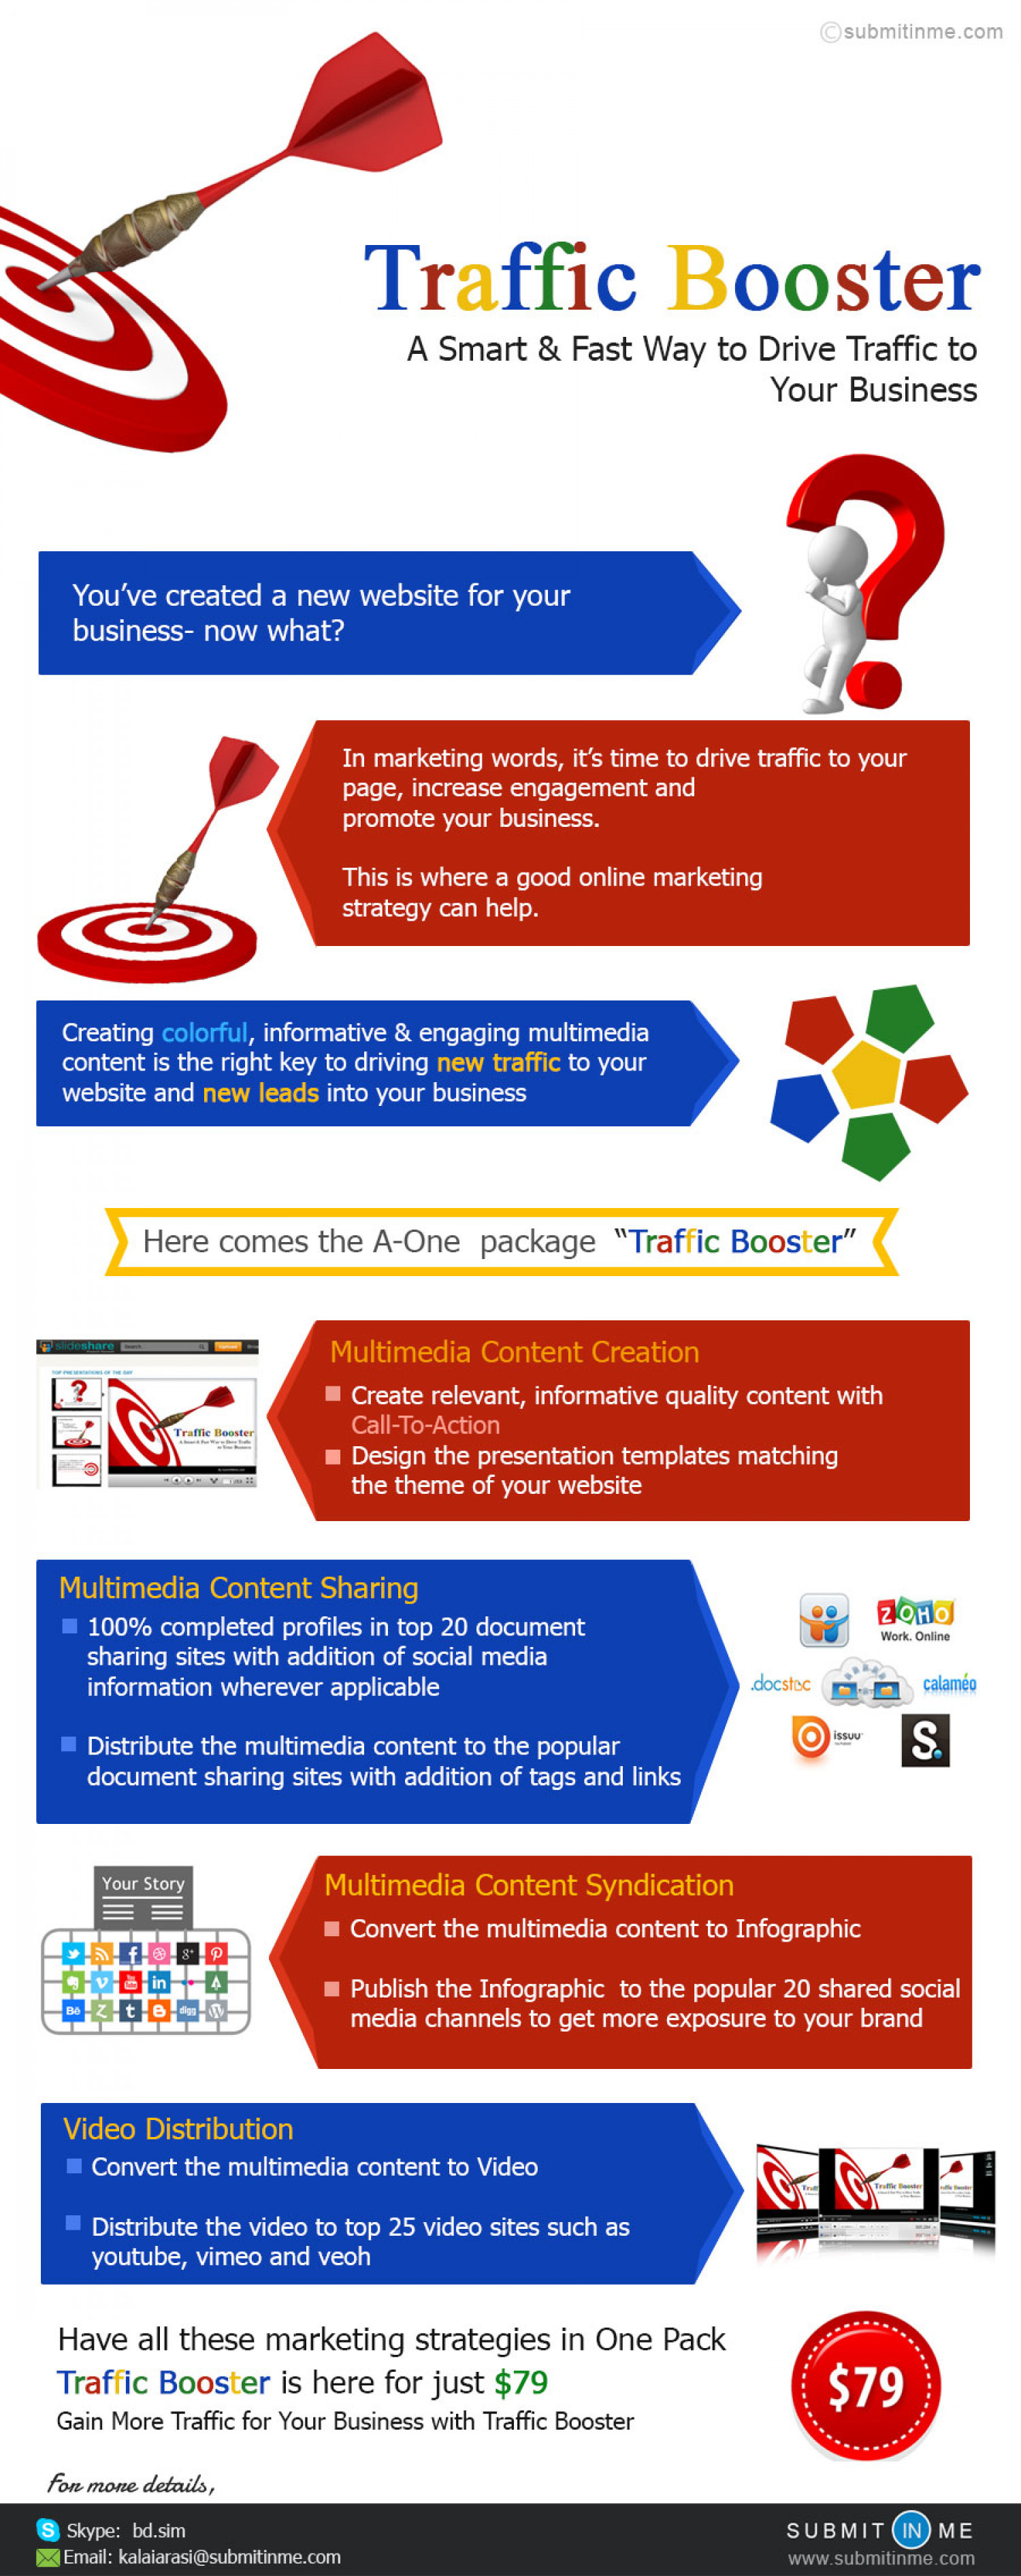 Promote Your Business via Social Media Marketing Campaign Infographic